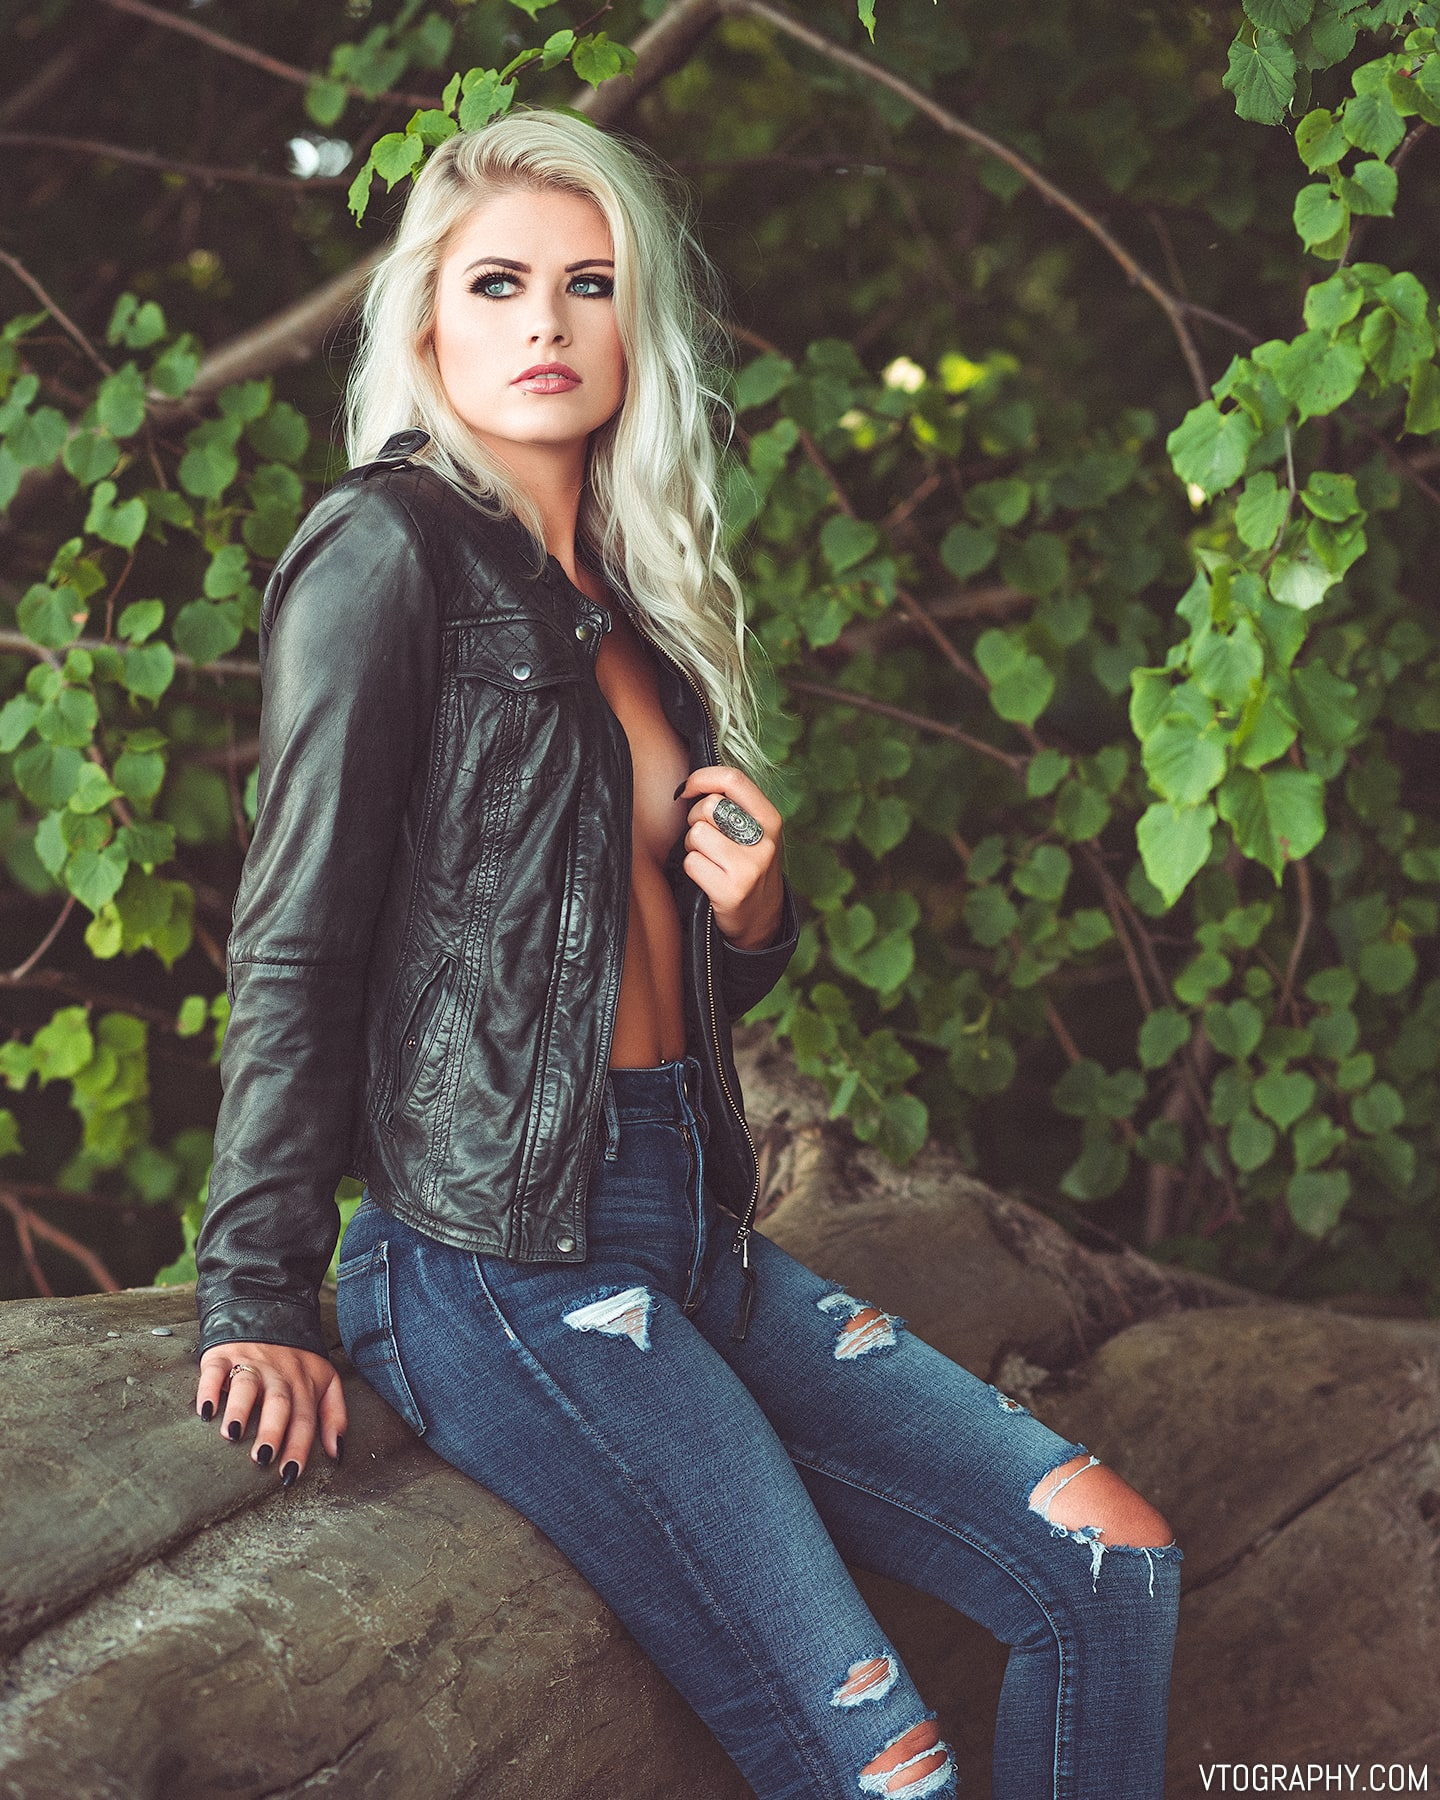 Model Sami wears a leather jacket and jeans